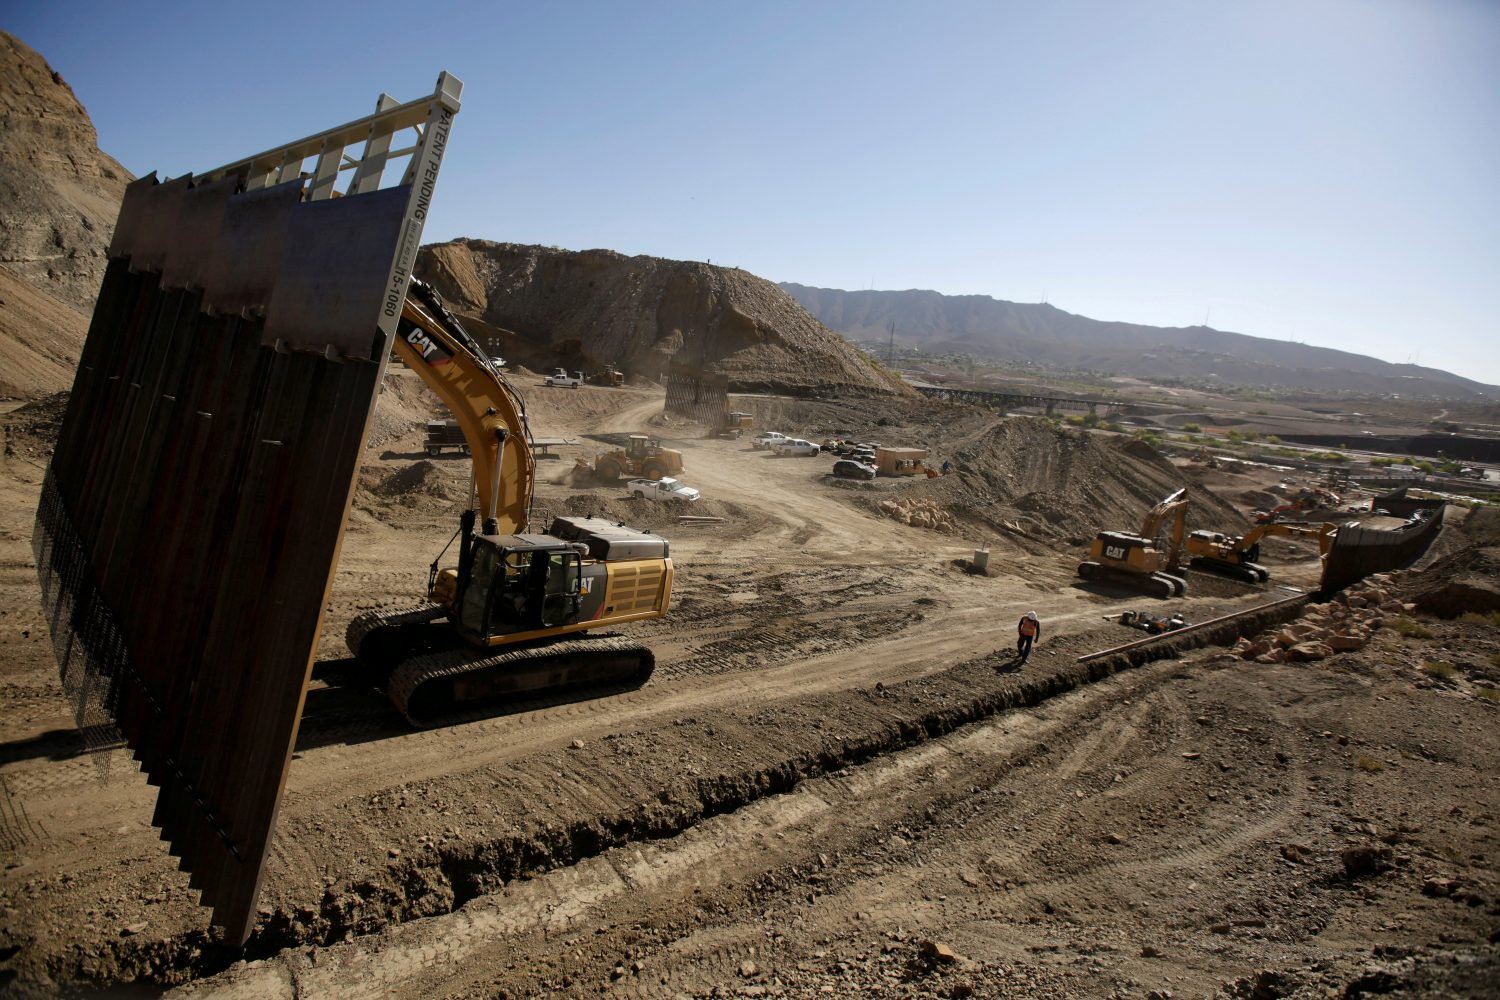 FILE PHOTO: Heavy machinery moves a bollard-type wall, to be placed along the border of private property using funds raised from a GoFundMe account, at Sunland Park, N.M., as seen from Ciudad Juarez, Mexico May 27, 2019. REUTERS/Jose Luis Gonzalez/File Photo